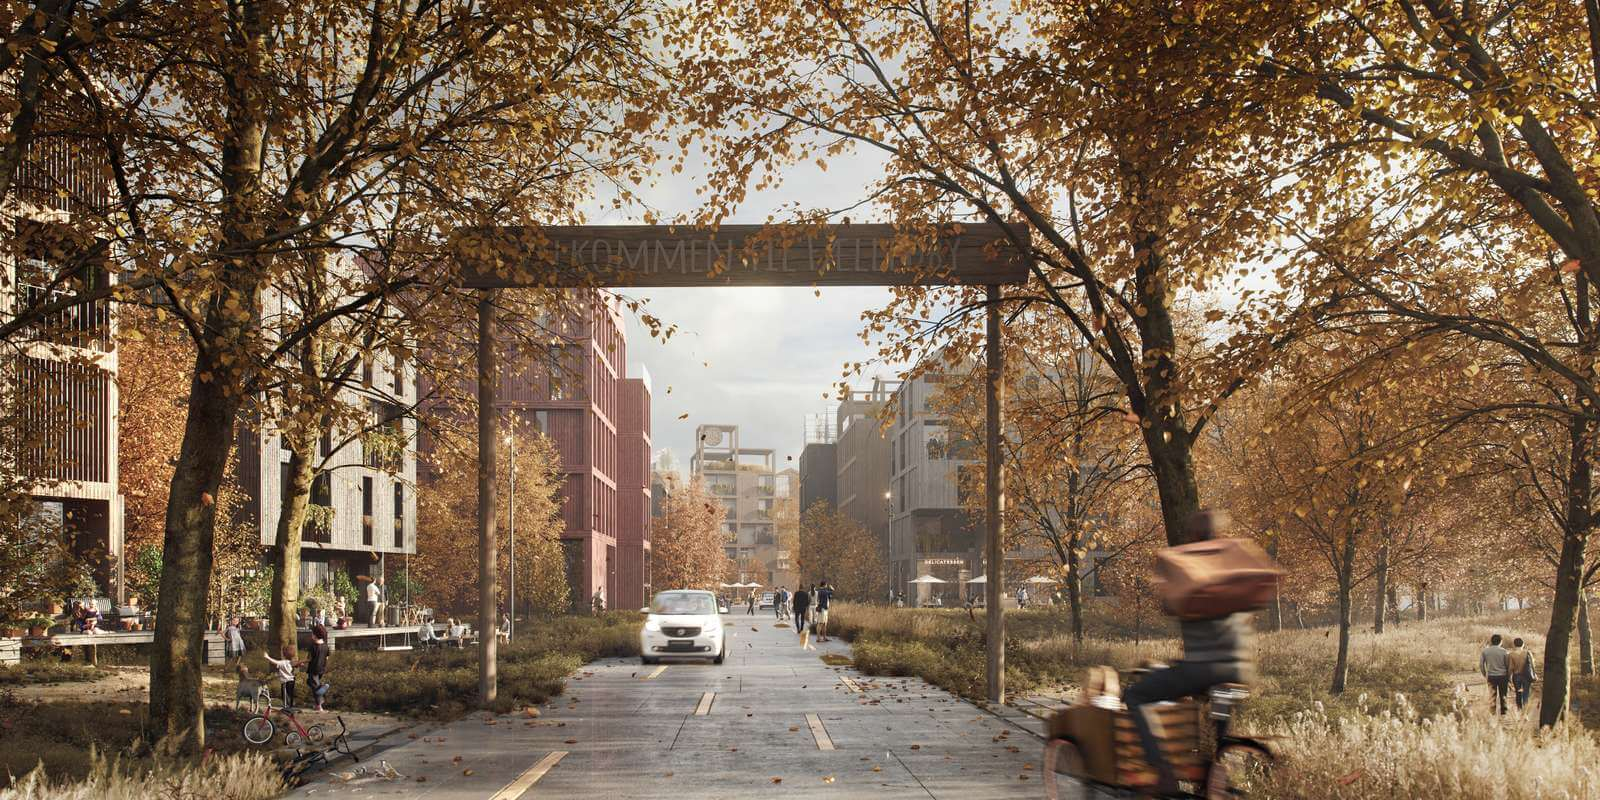 Connectivity within the neighbourhood is via narrow roads that reduce vehicular traffic and increase access to nature | Fælledby | Henning Larsen | STIRworld